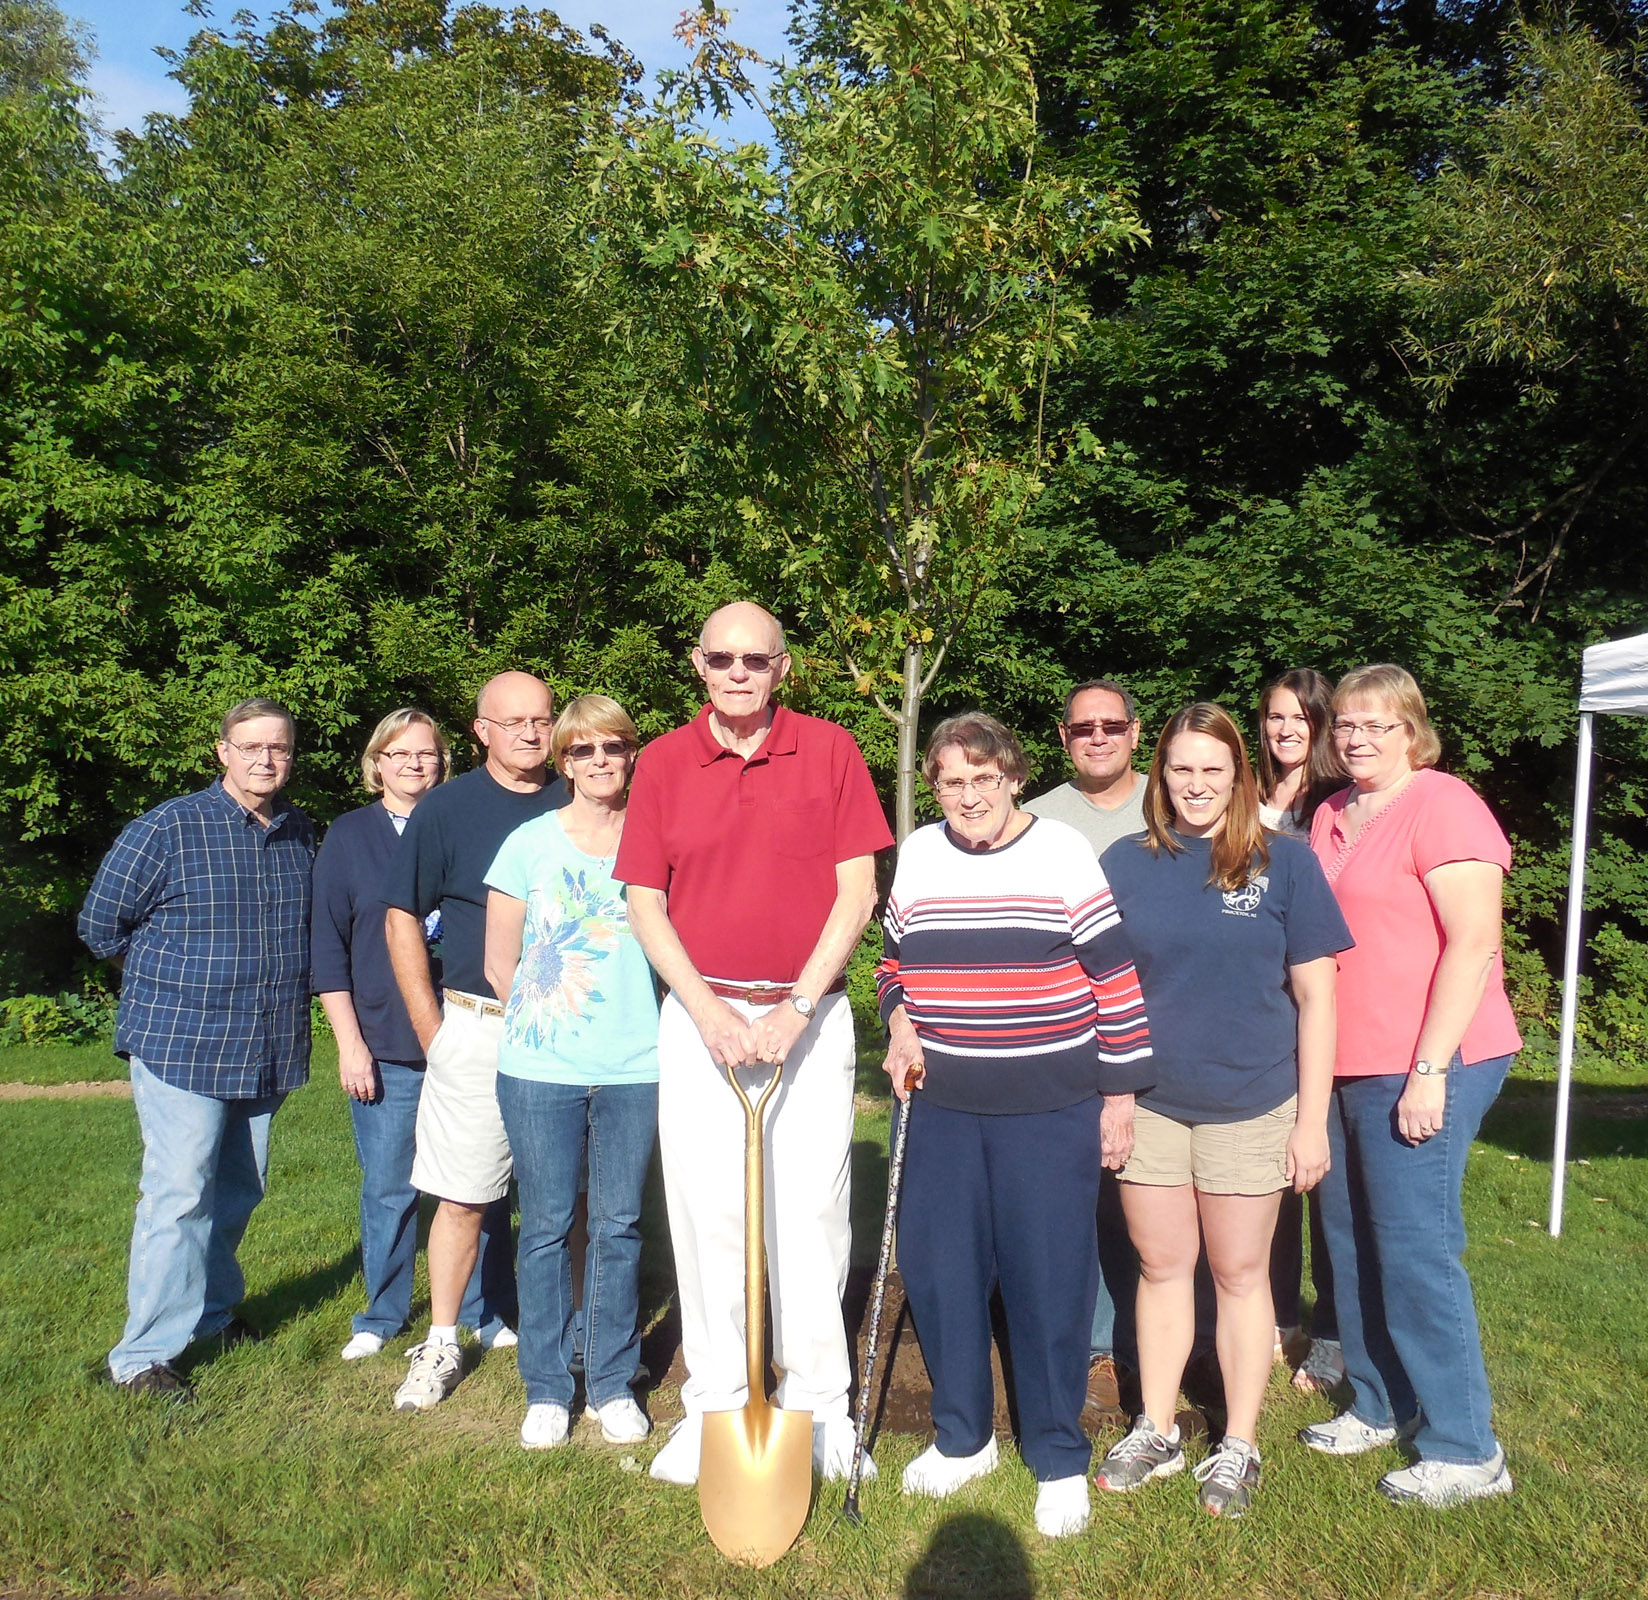 Don Suter standing with family, friends and colleagues just after the tree was planted. Provided photo